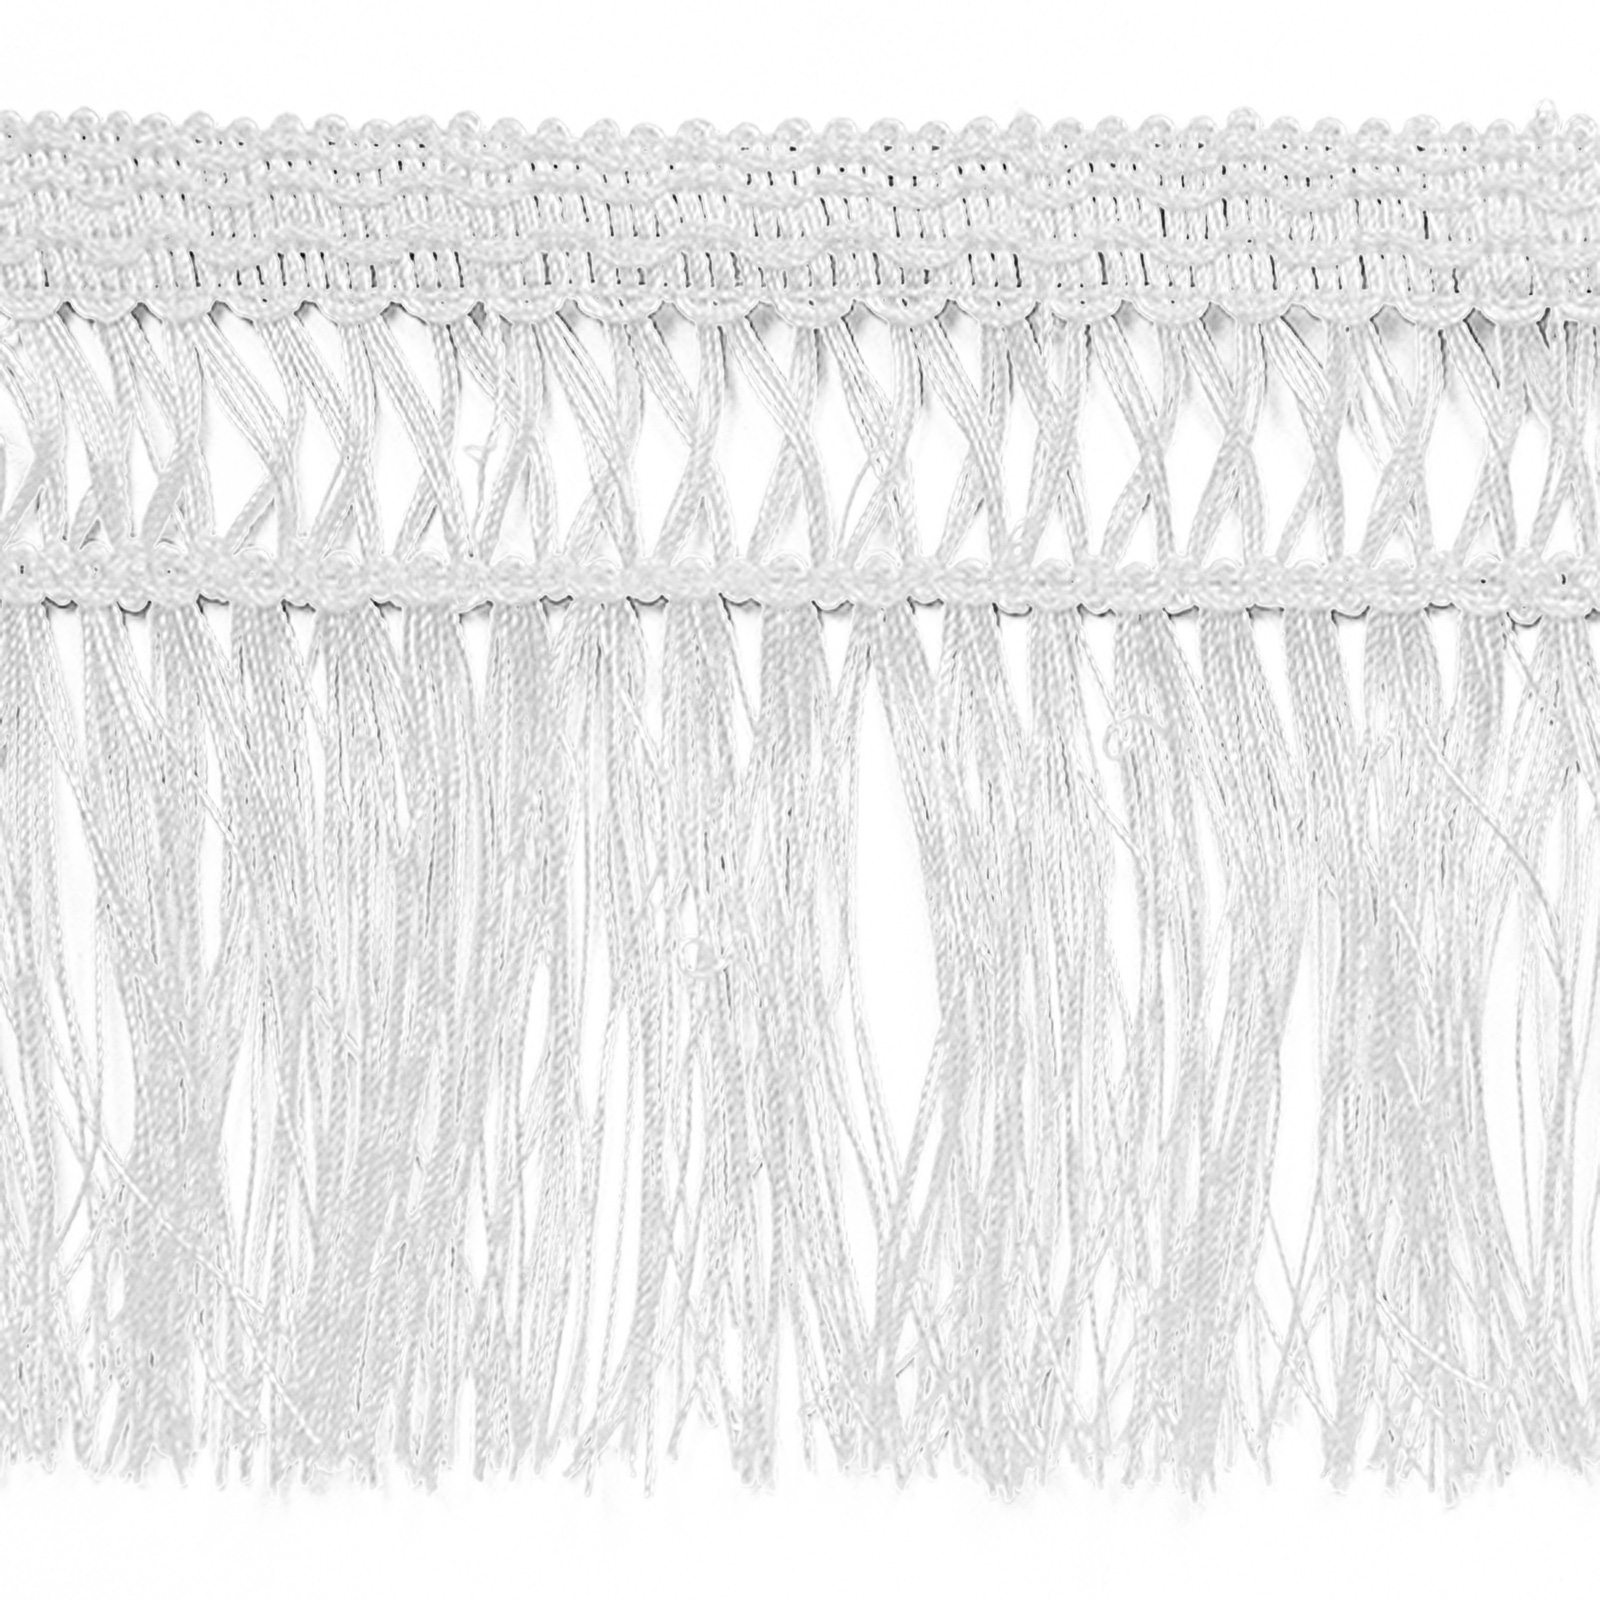 4 1/2'' Maddie Lattice Edge Chainette Fringe White by Expo in USA